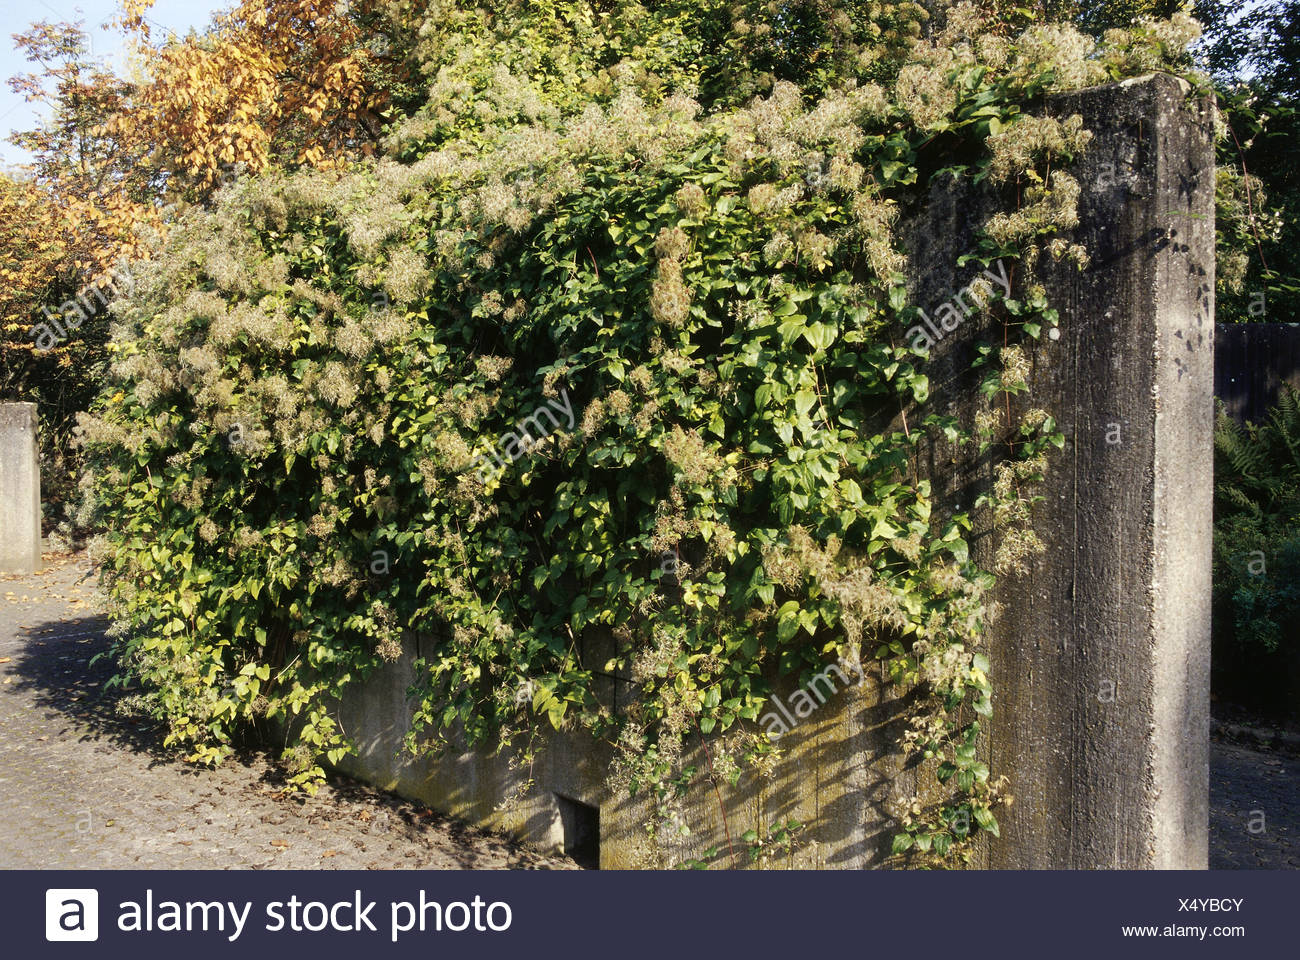 botany, Clematis, 'Clematis vitalba', infructescence, on wall, Additional-Rights-Clearance-Info-Not-Available - Stock Image